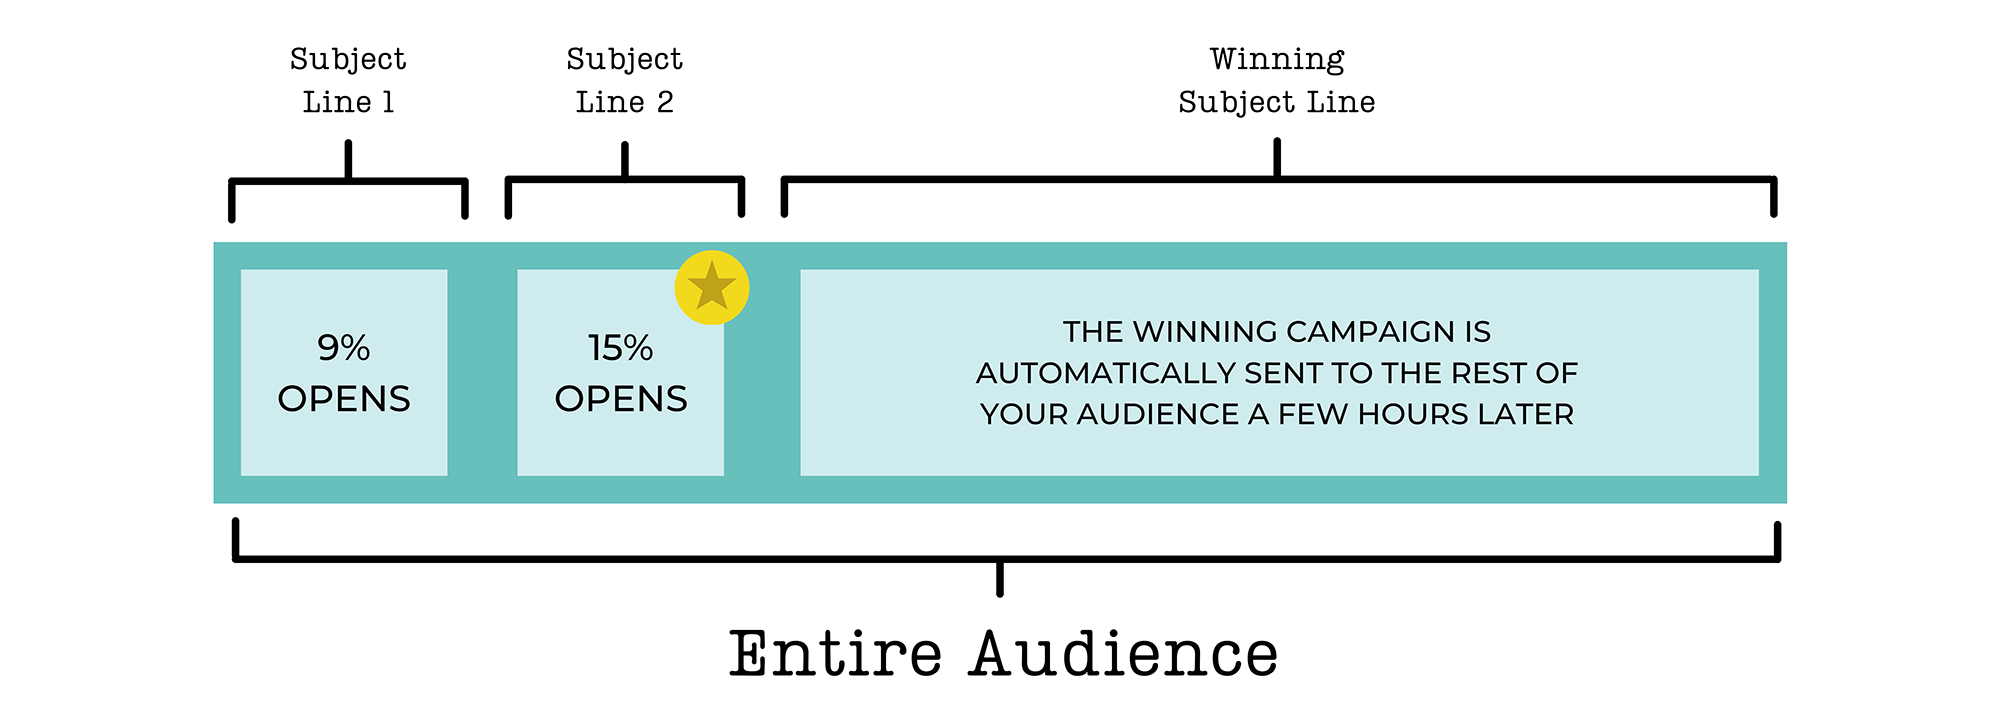 Email campaign's subject line variables